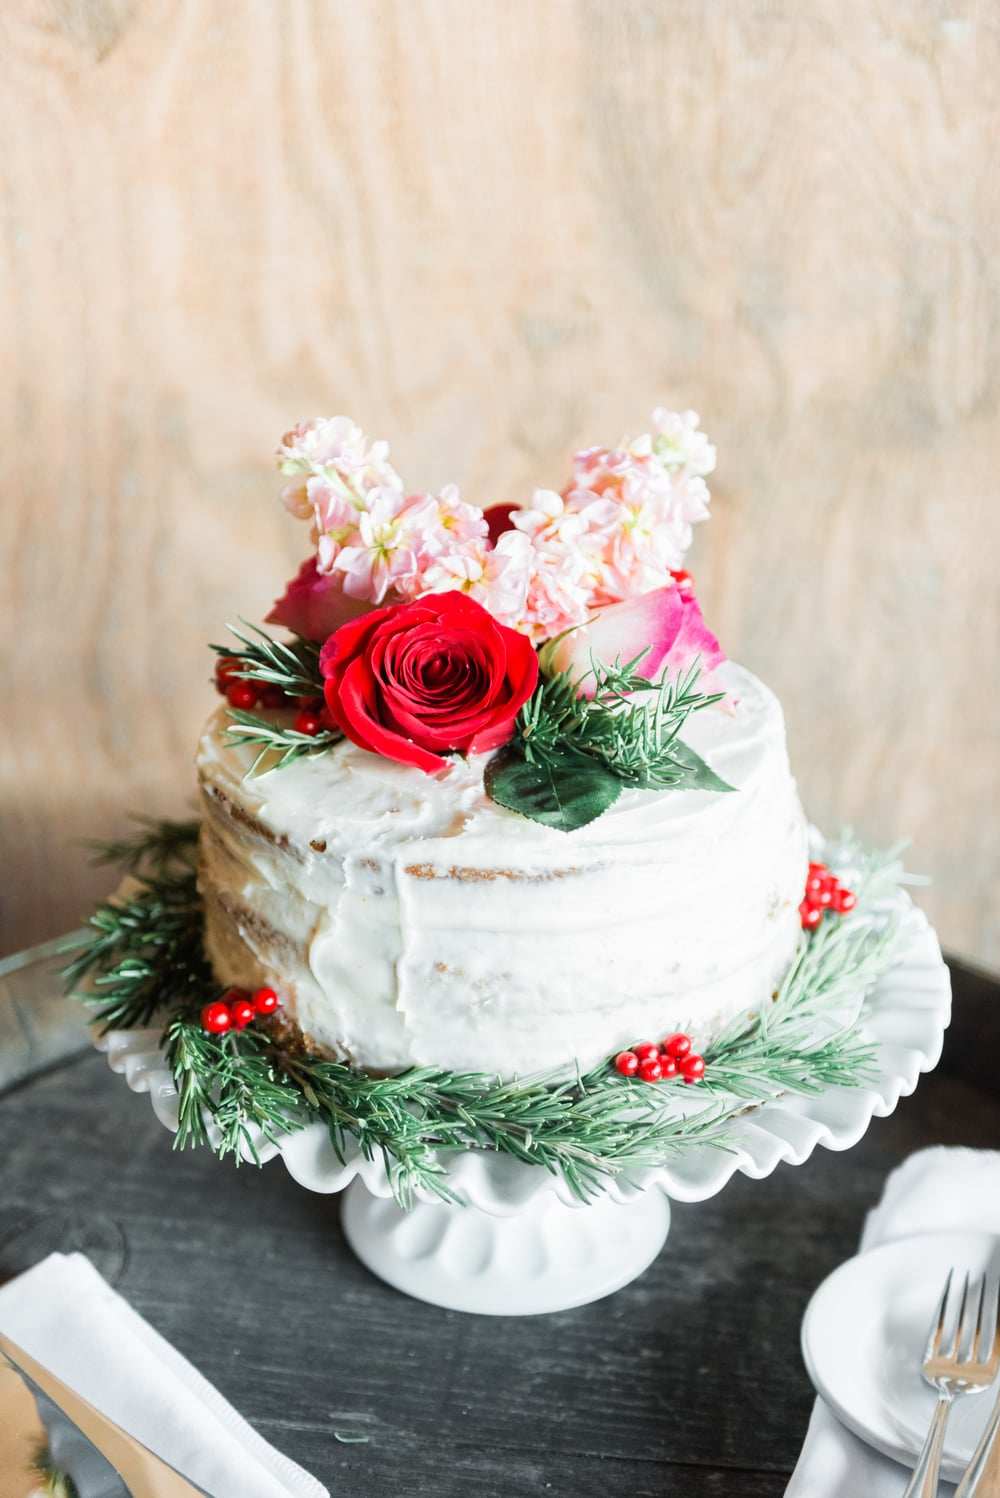 Natalie_Schutt_Photography_Winter_Wedding_San_Luis_Obispo-79.jpg